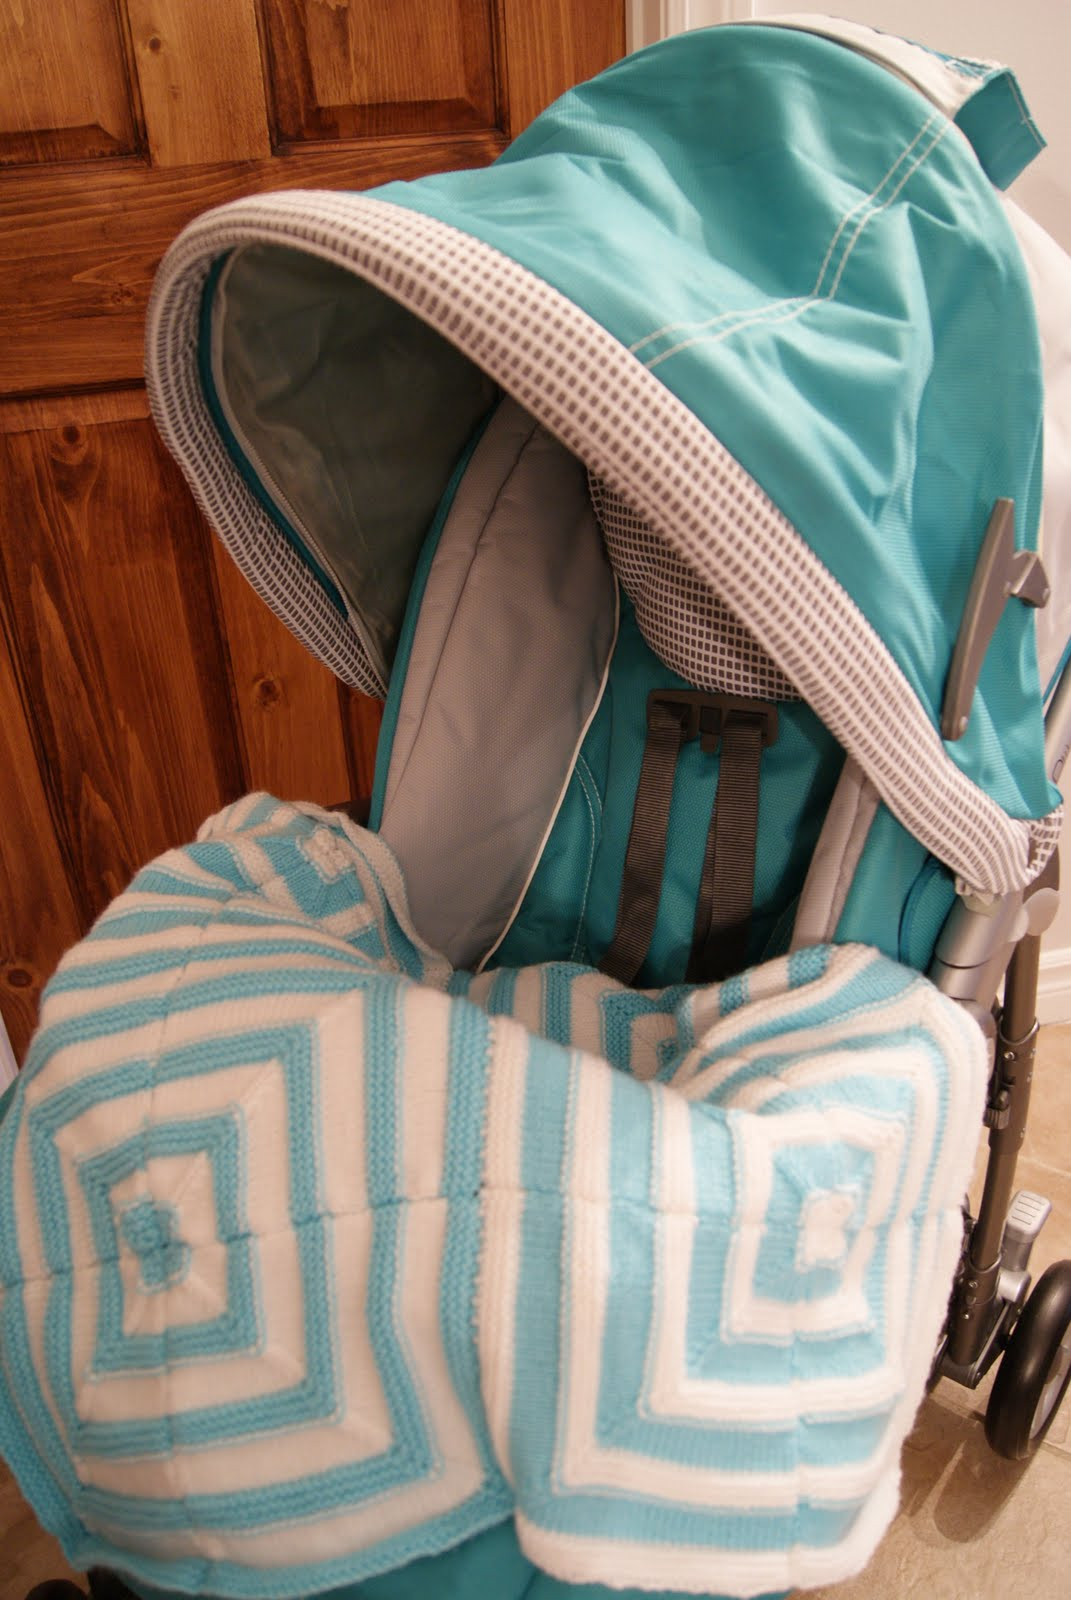 See Sophie Knit: FO : Baby stroller blanket